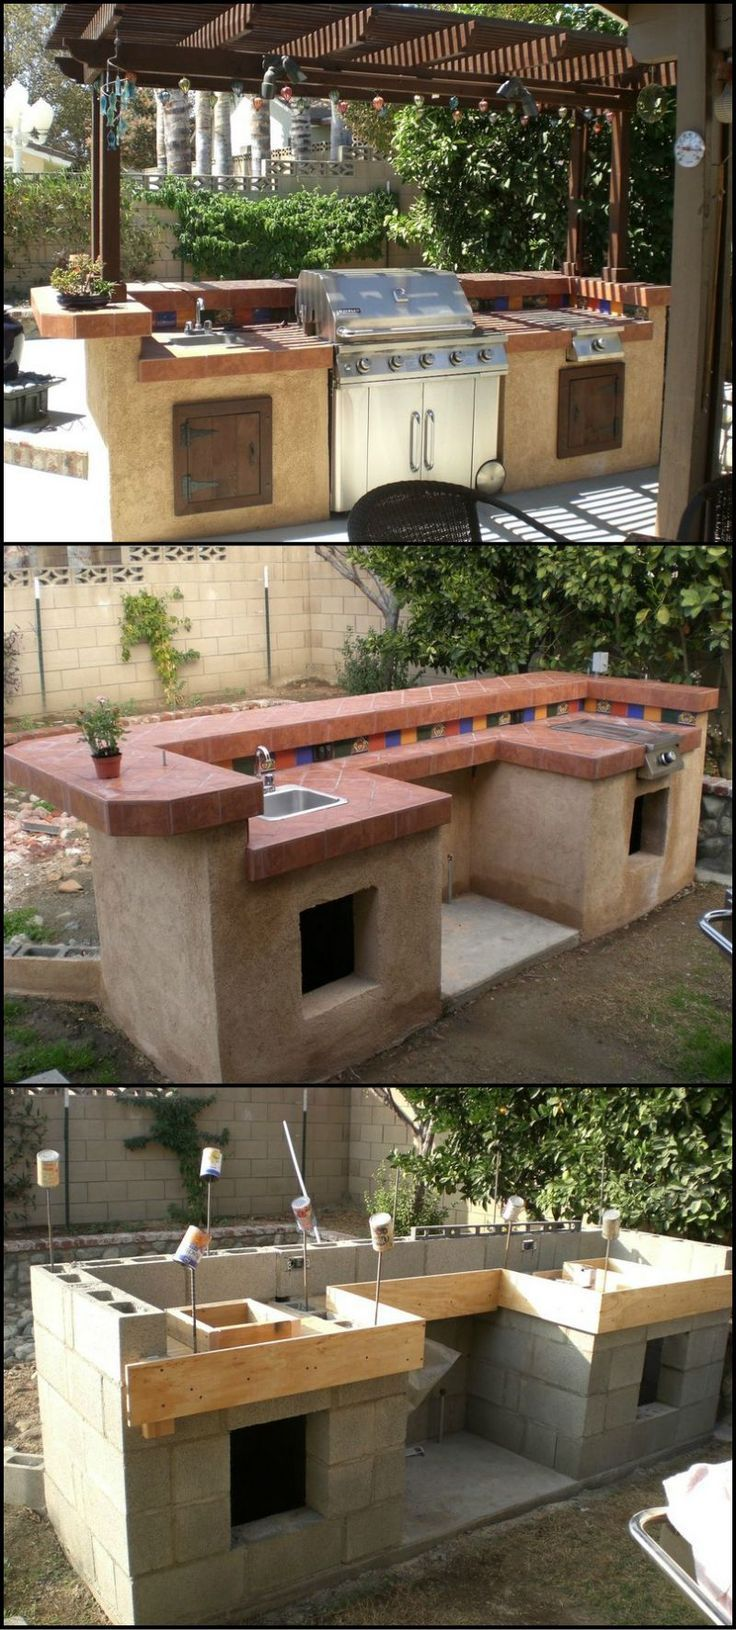 For Us, A Bar And A Fireplace/pit Outdoor Cinder Block Kitchen